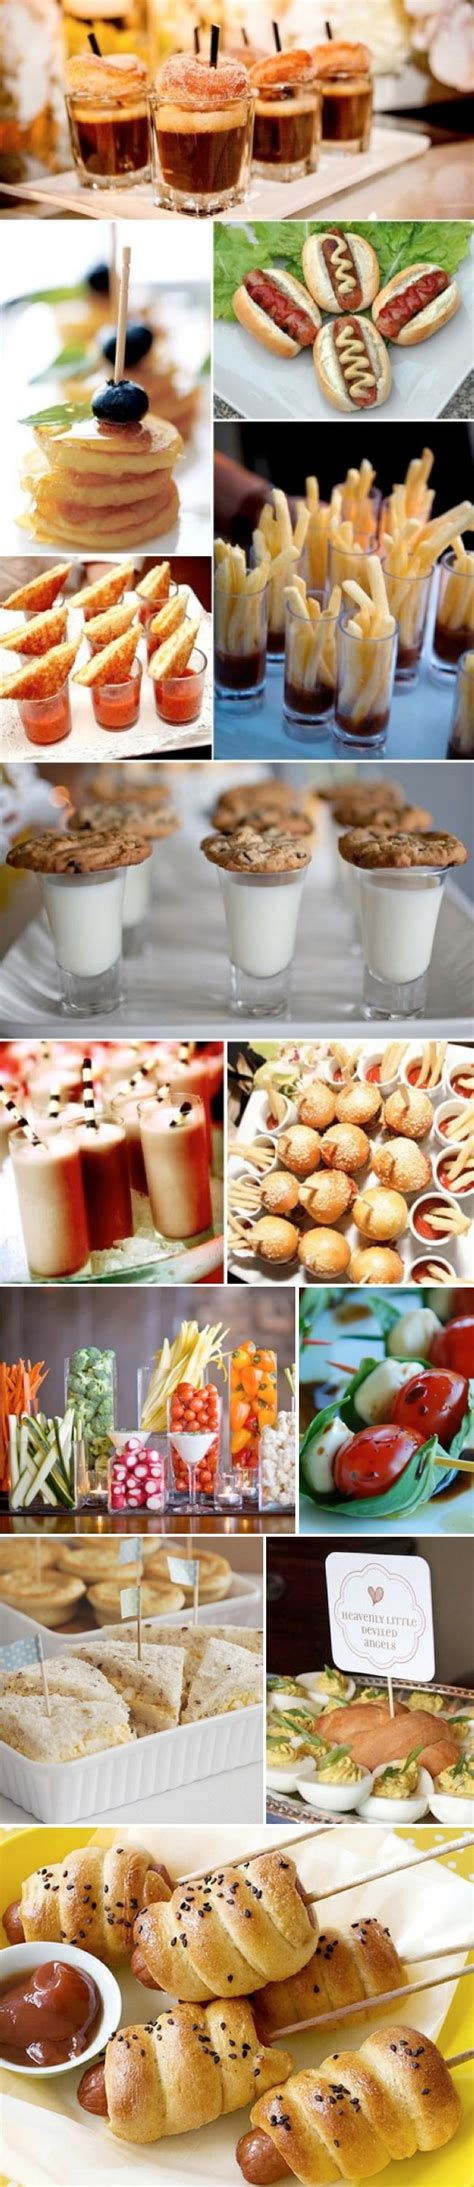 finger foods for cocktail finger food ideas for any birthday snacks